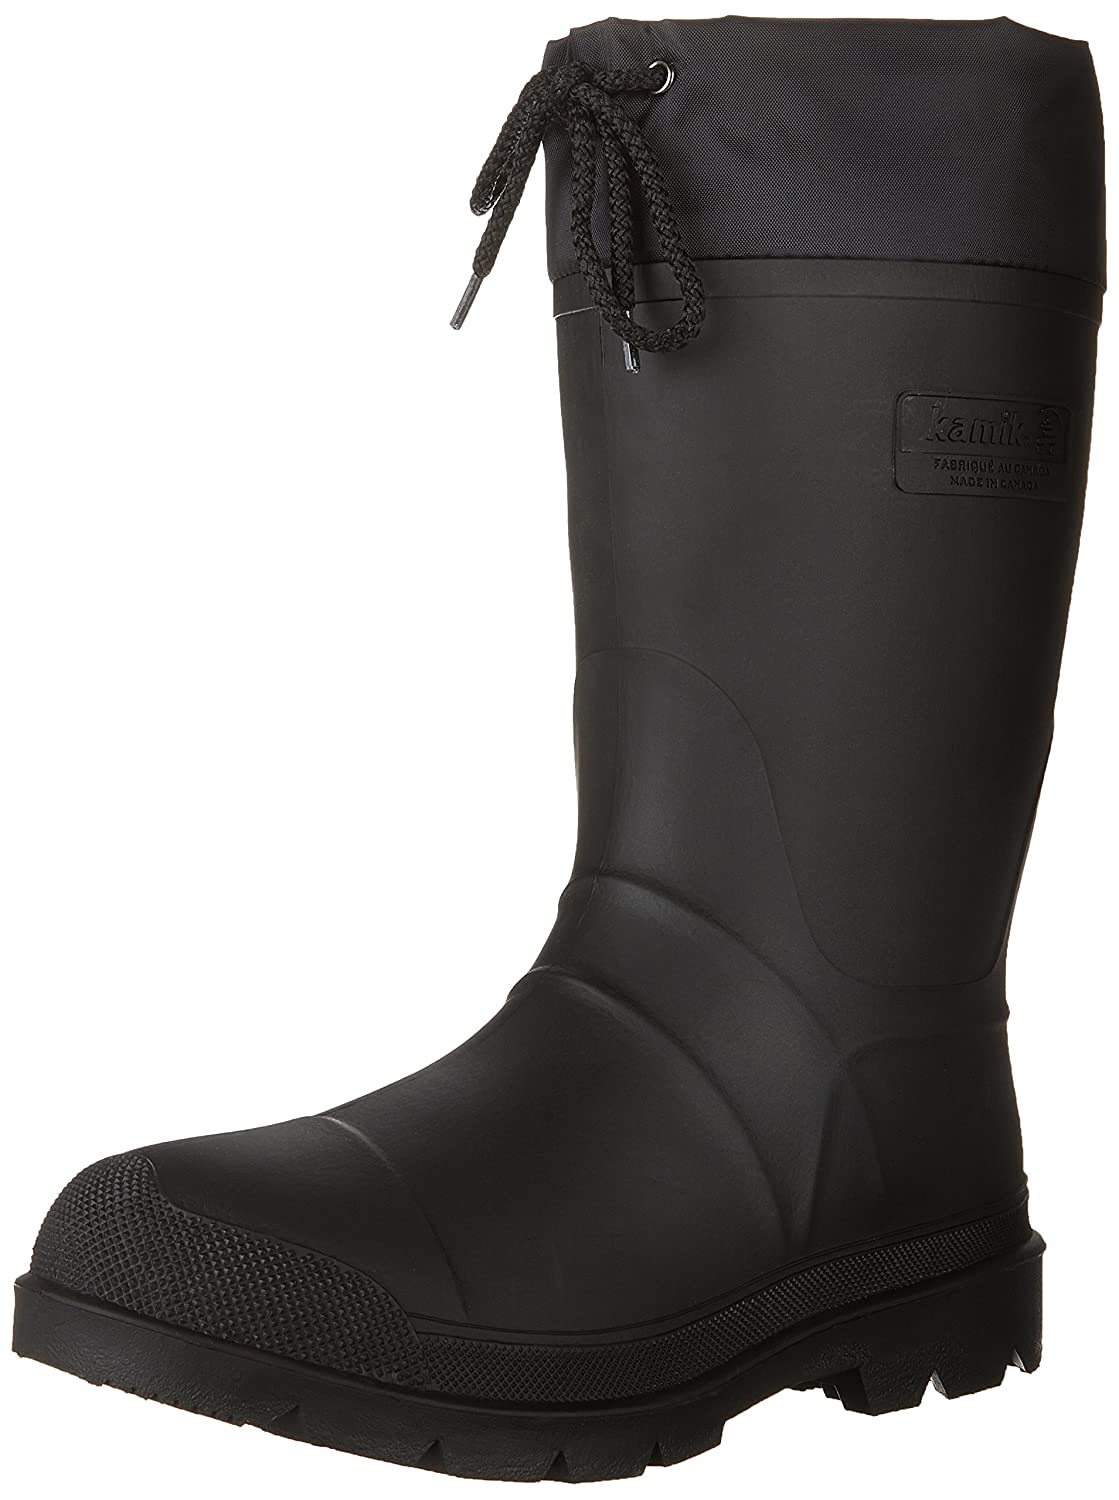 Kamik Men's Hunter Insulated Winter Boot, Black, 9 M US HUNTER-M